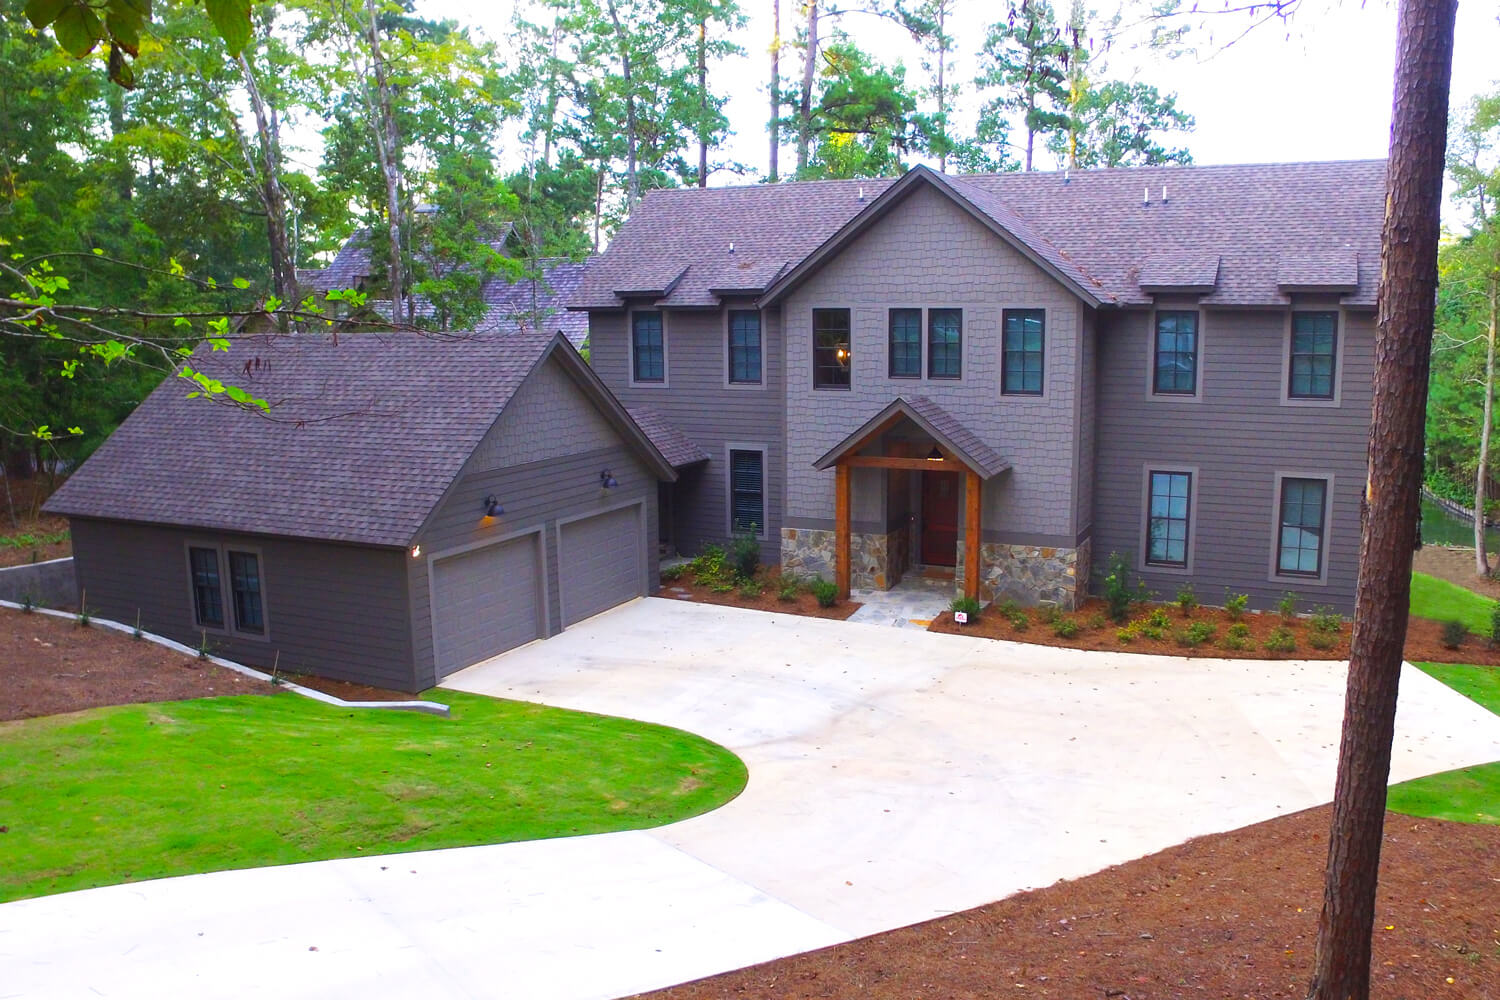 Lake Martin Cabin - Rear Elevation - Designed by Foshee Architecture